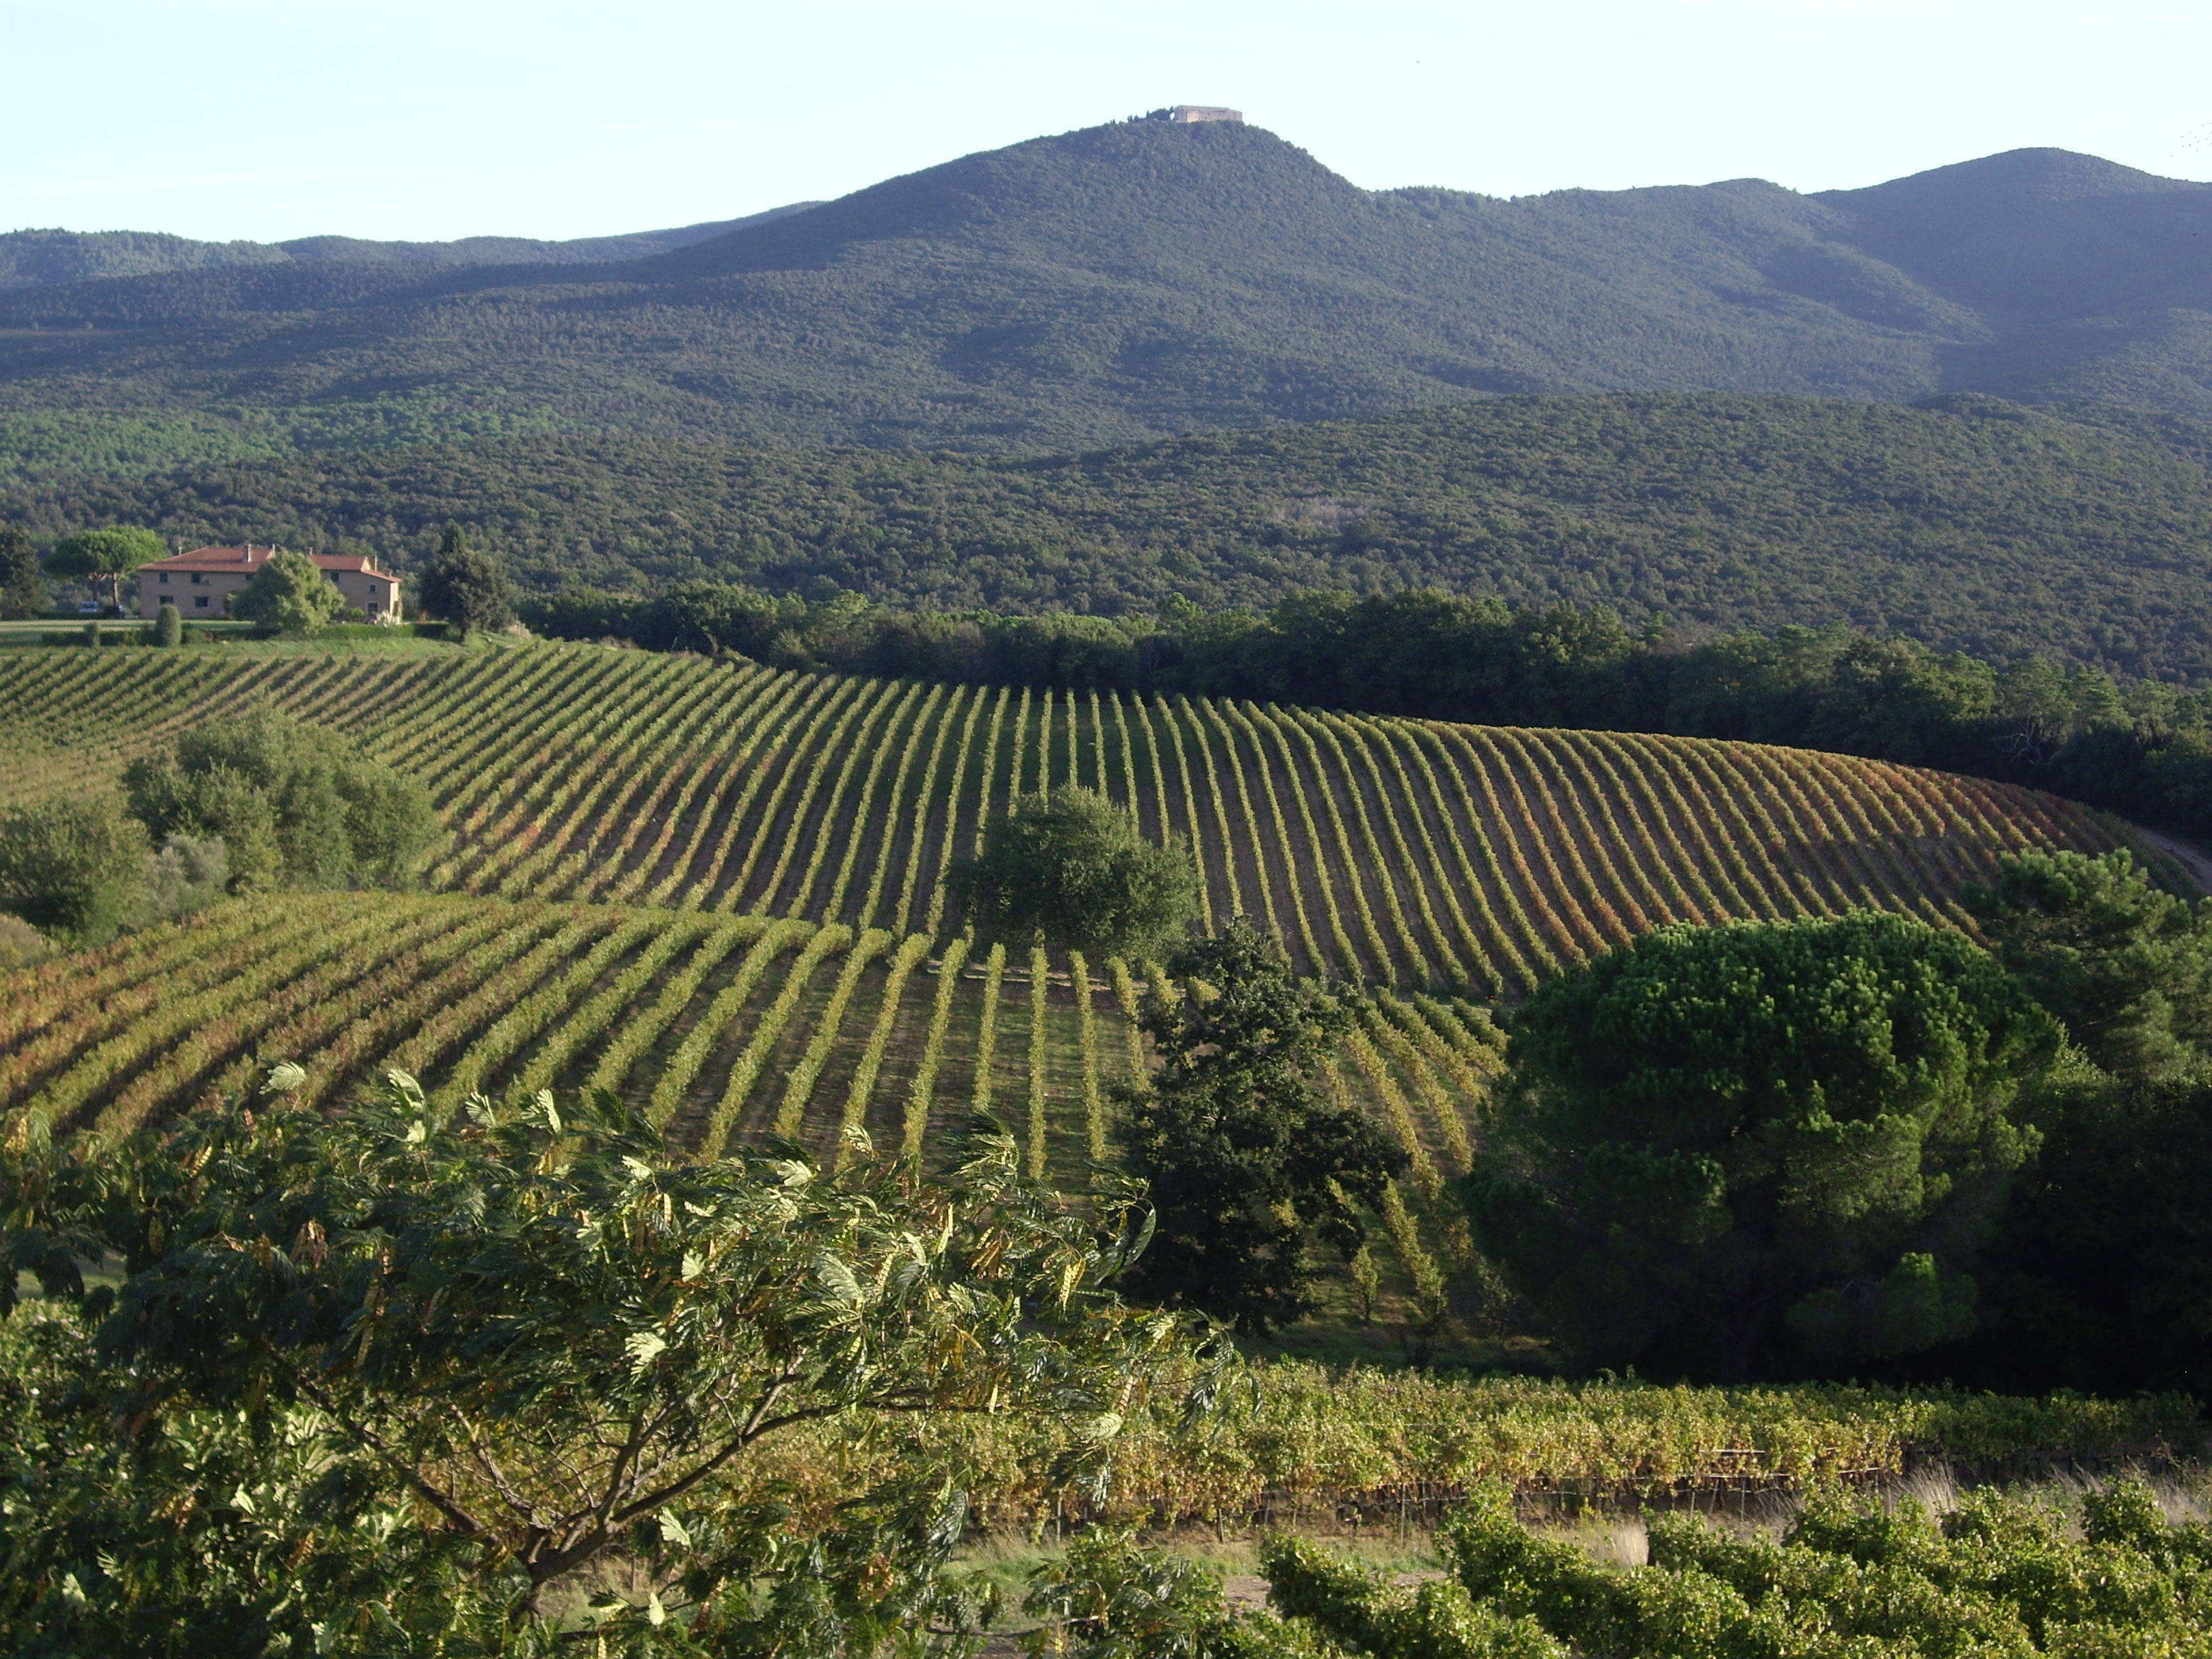 Landscape of vineyards with mountains behind